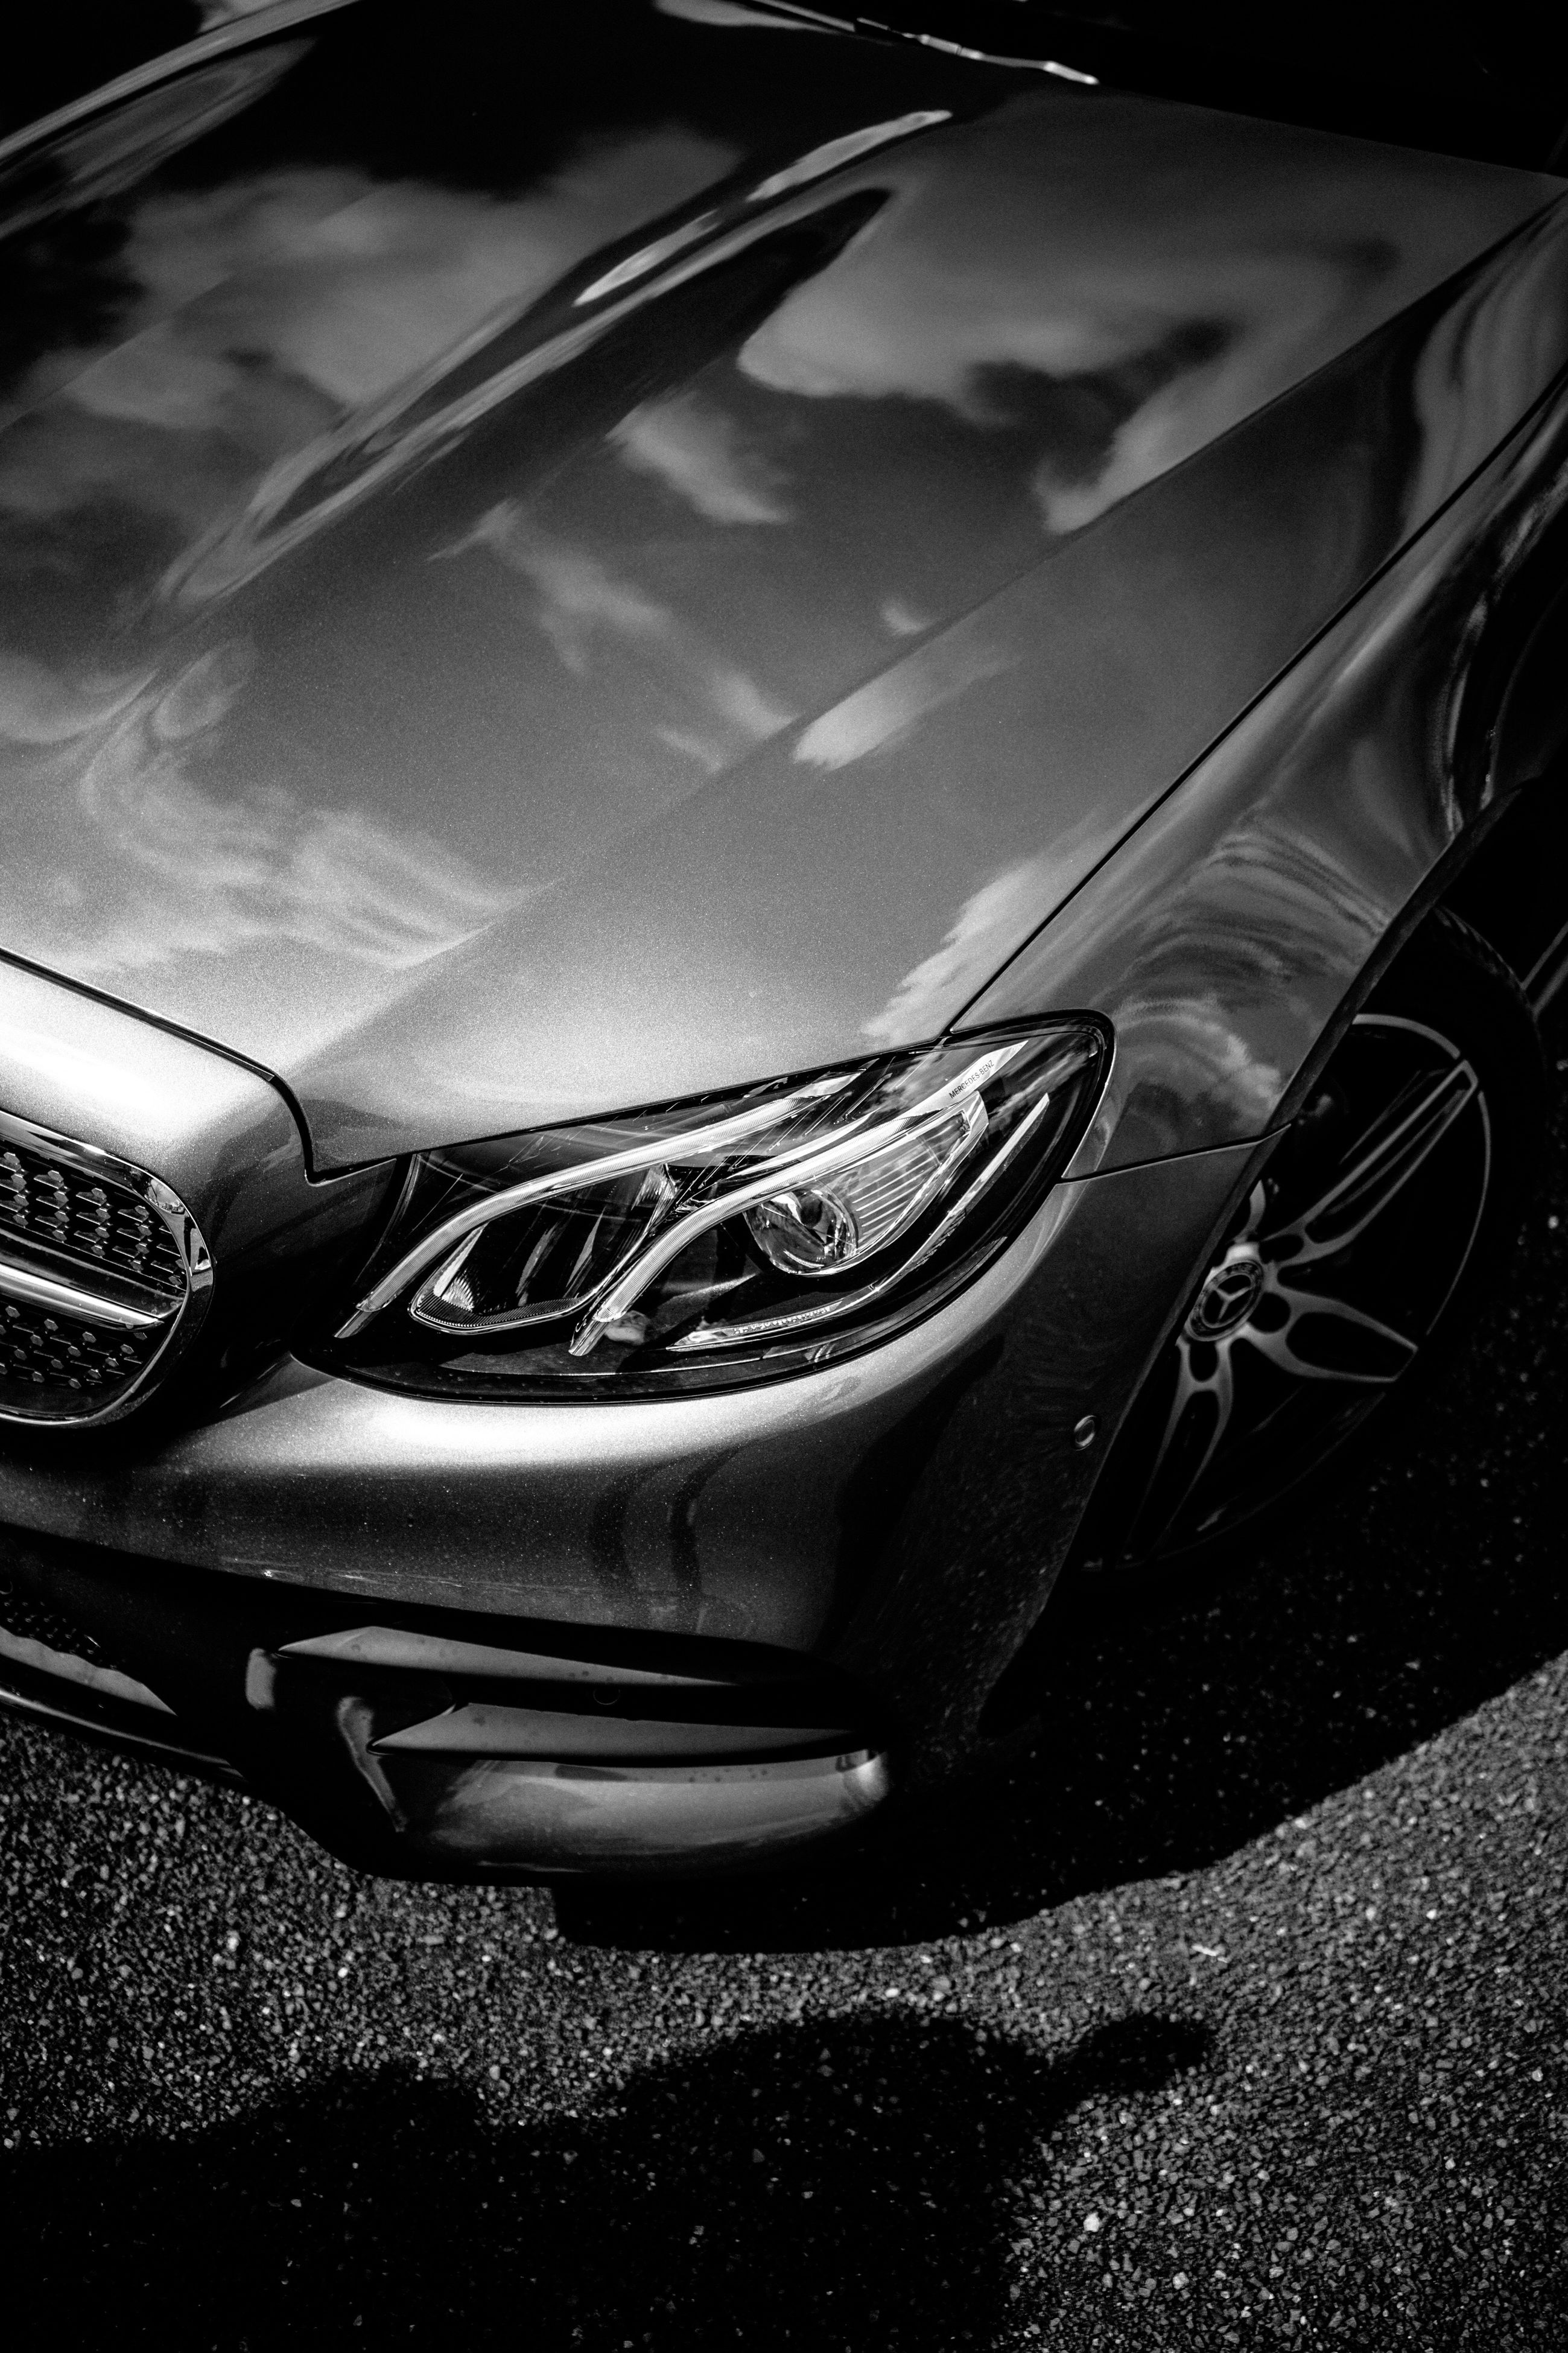 car, land vehicle, transportation, mode of transport, reflection, outdoors, close-up, vehicle part, day, no people